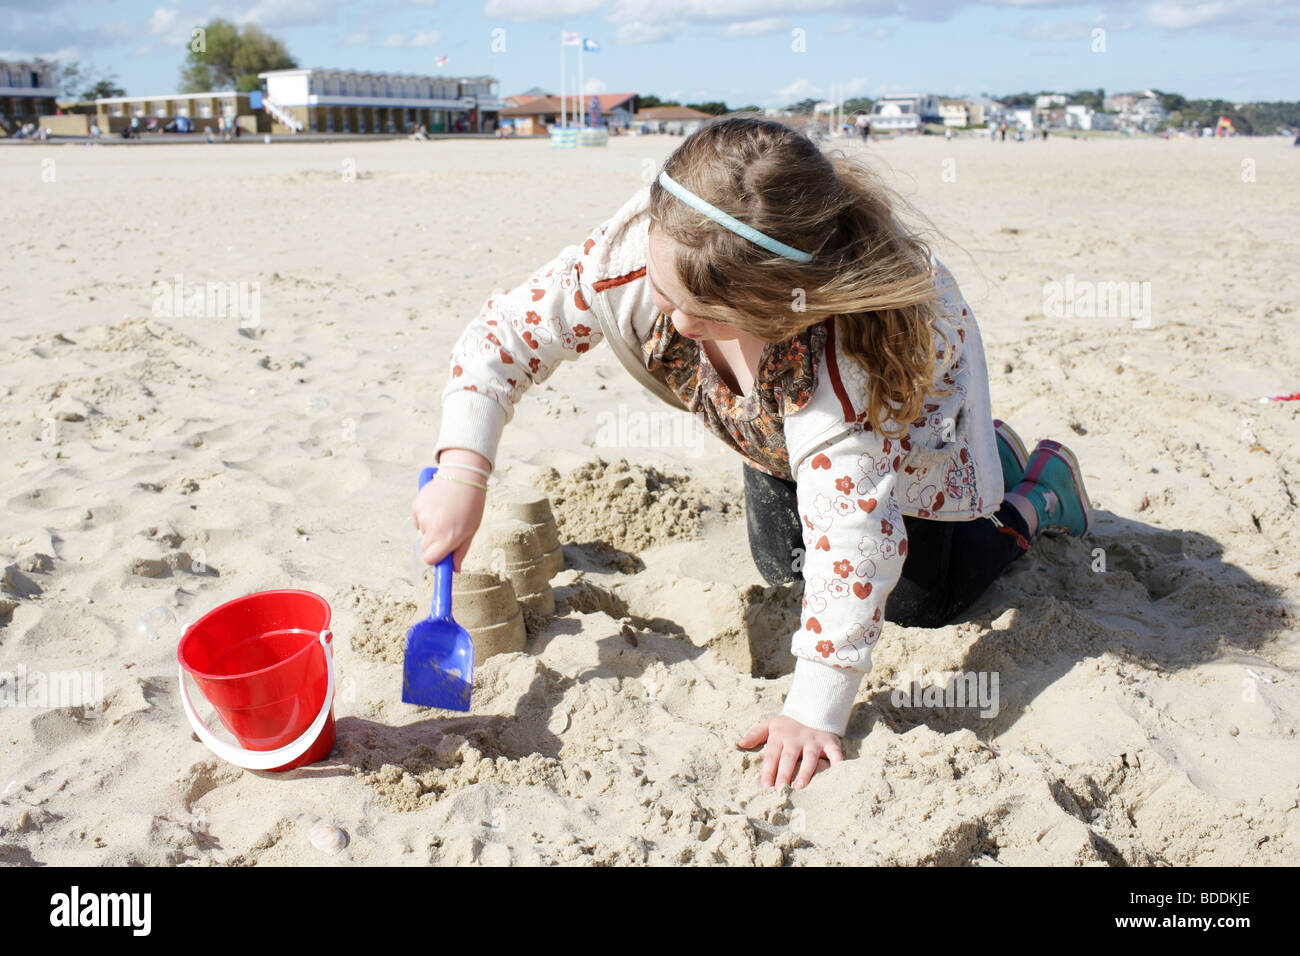 Young Girl Playing at the Beach. Model Released - Stock Image